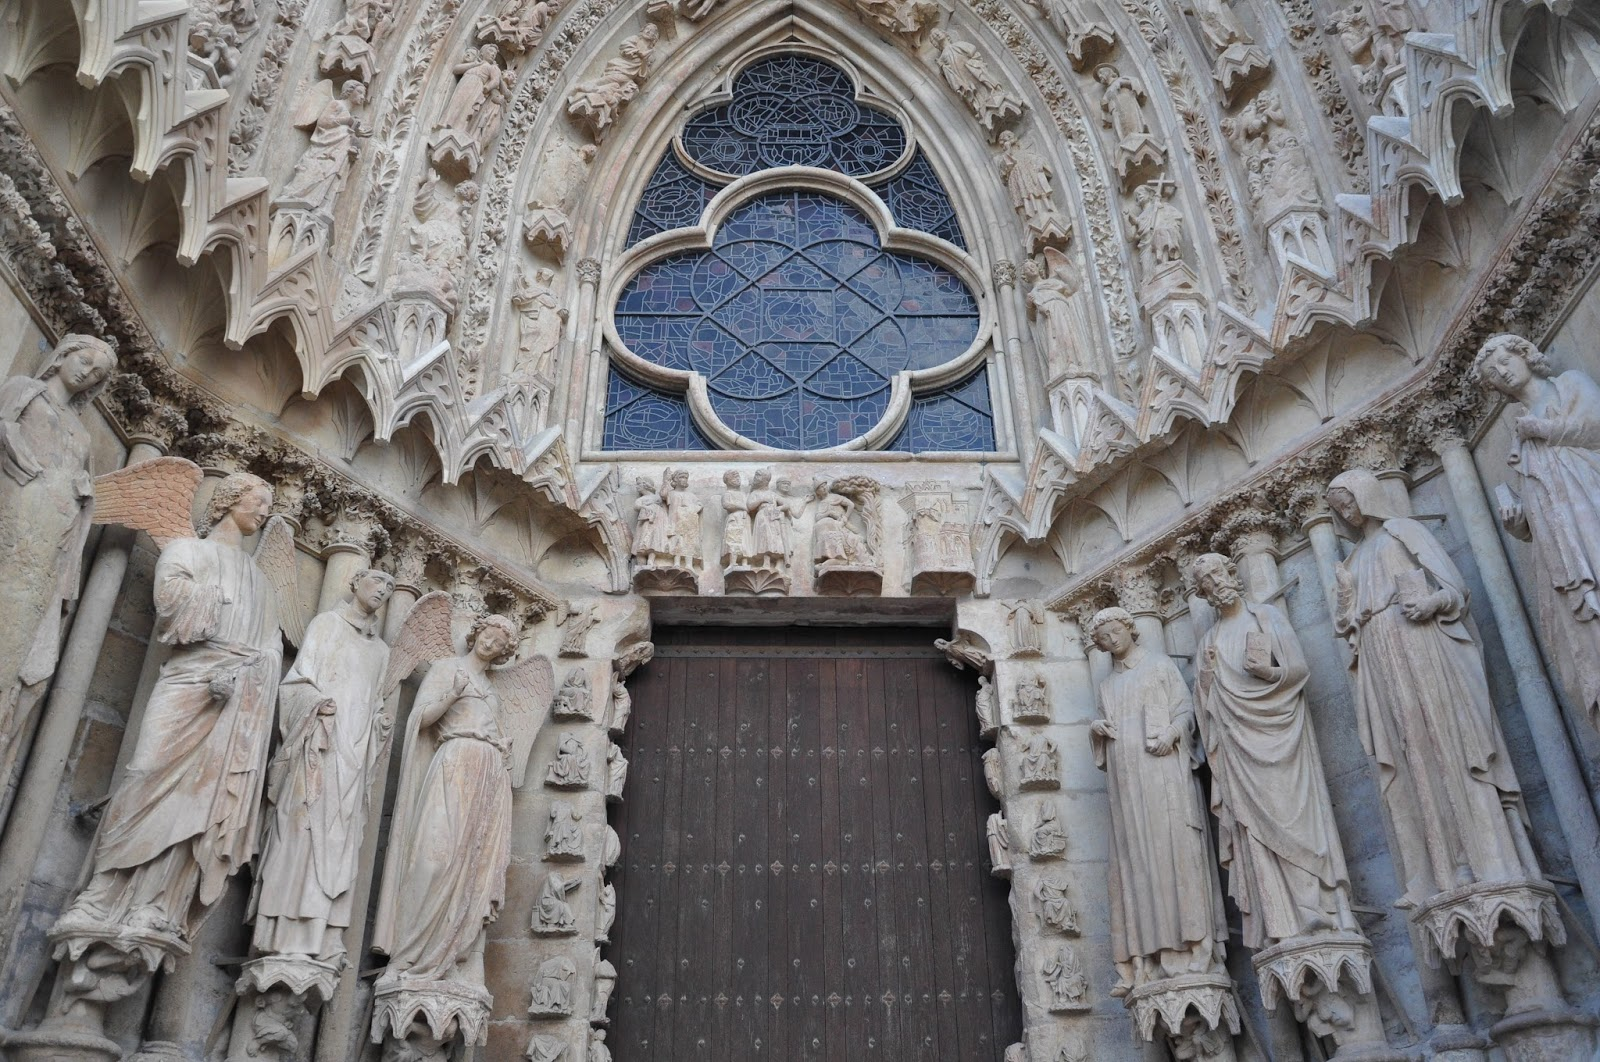 Outside view, Reims Cathedral, Reims, France